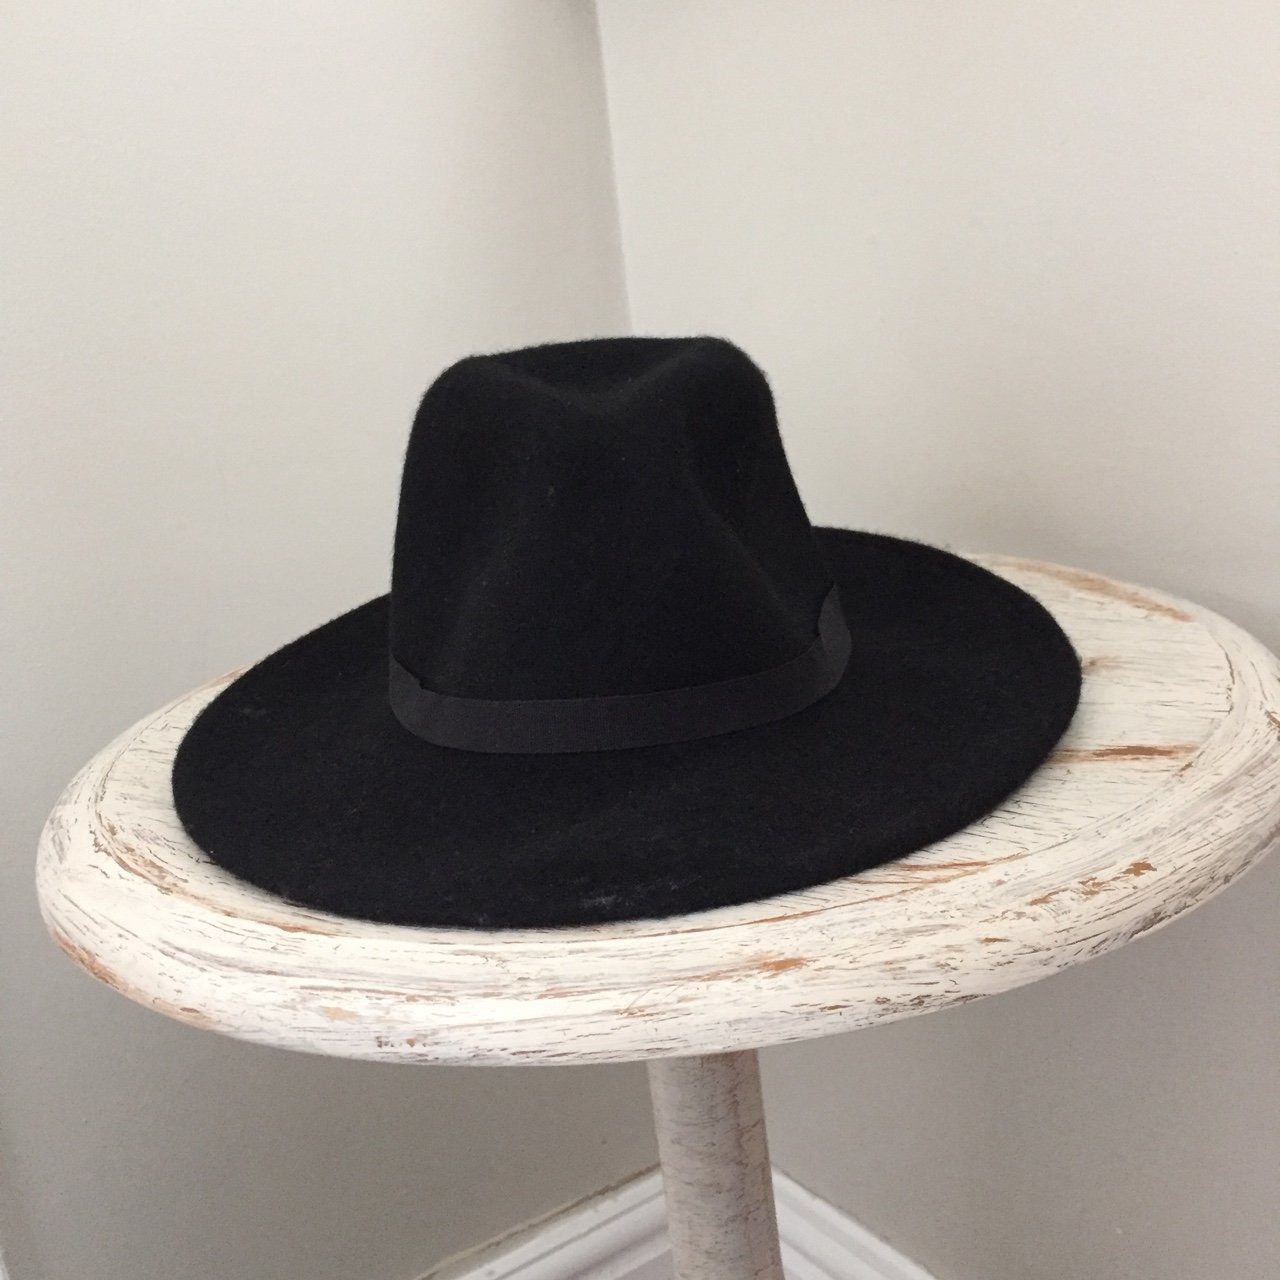 Women s river island wool fedora hat worn one £10 including - Depop 83931df8e81a